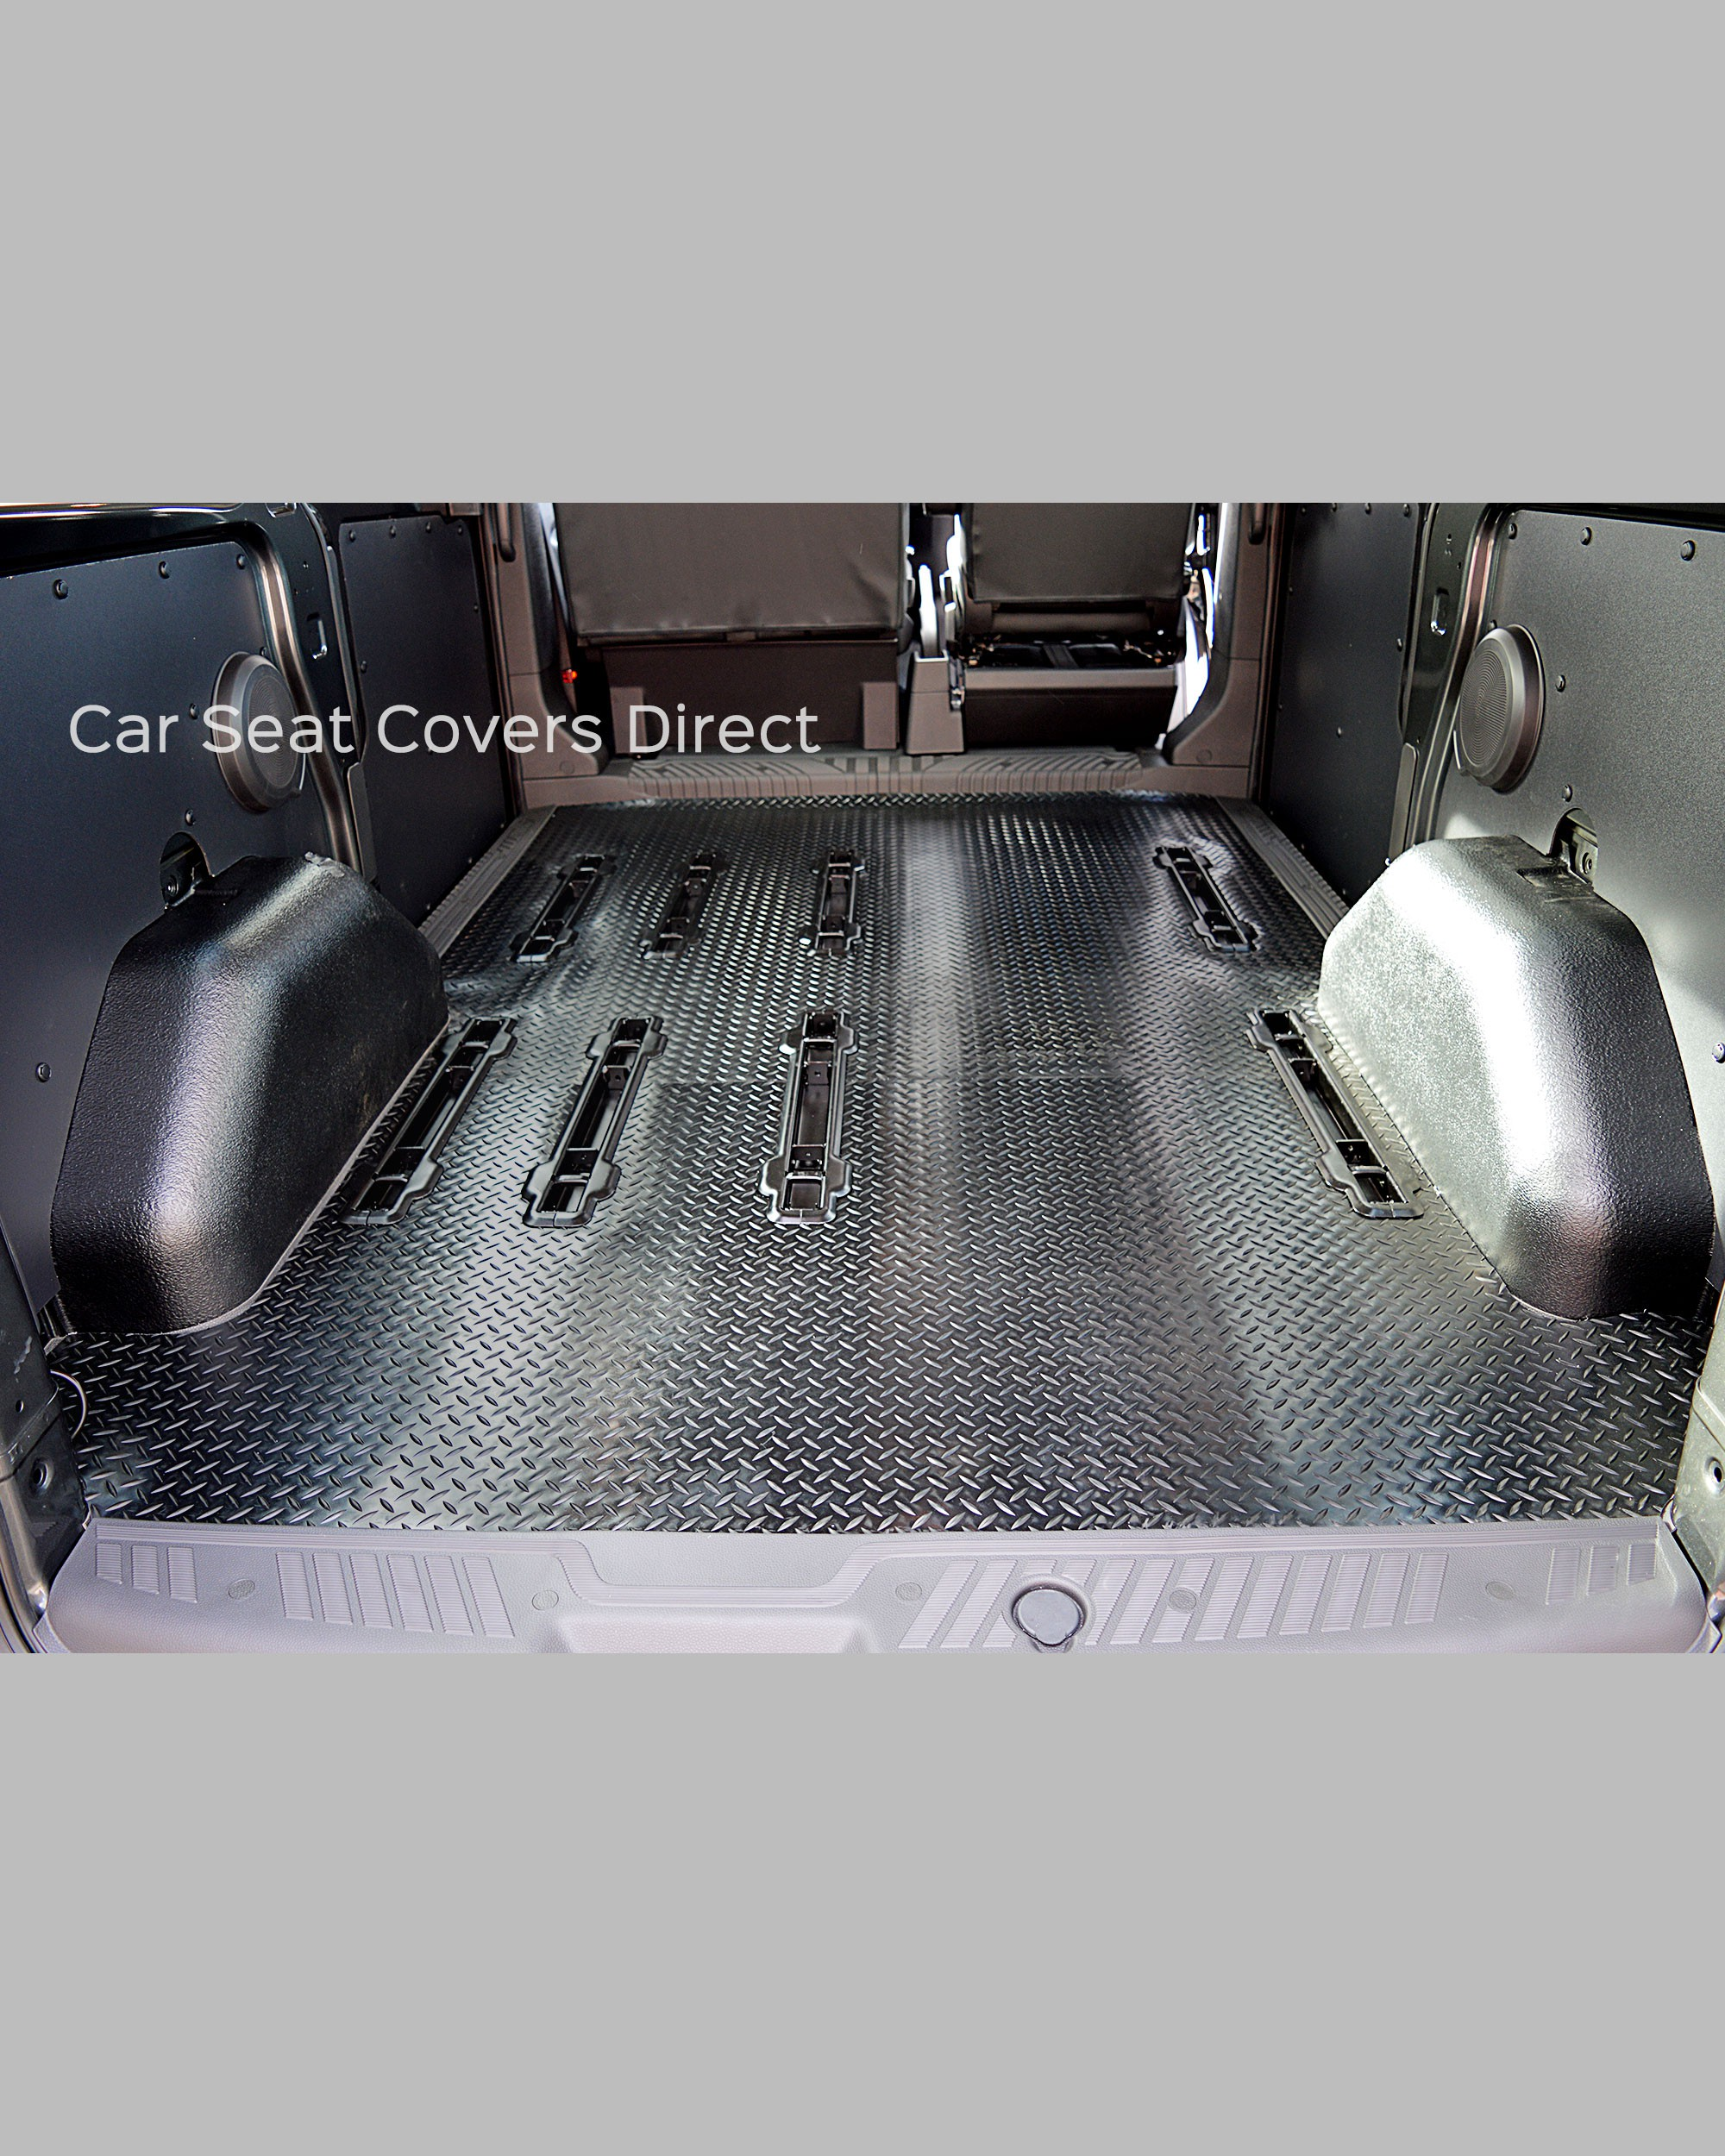 mats pre spike pvc productdetail coil axia floor perodua fit cut carpet mat custom anti b nail slip